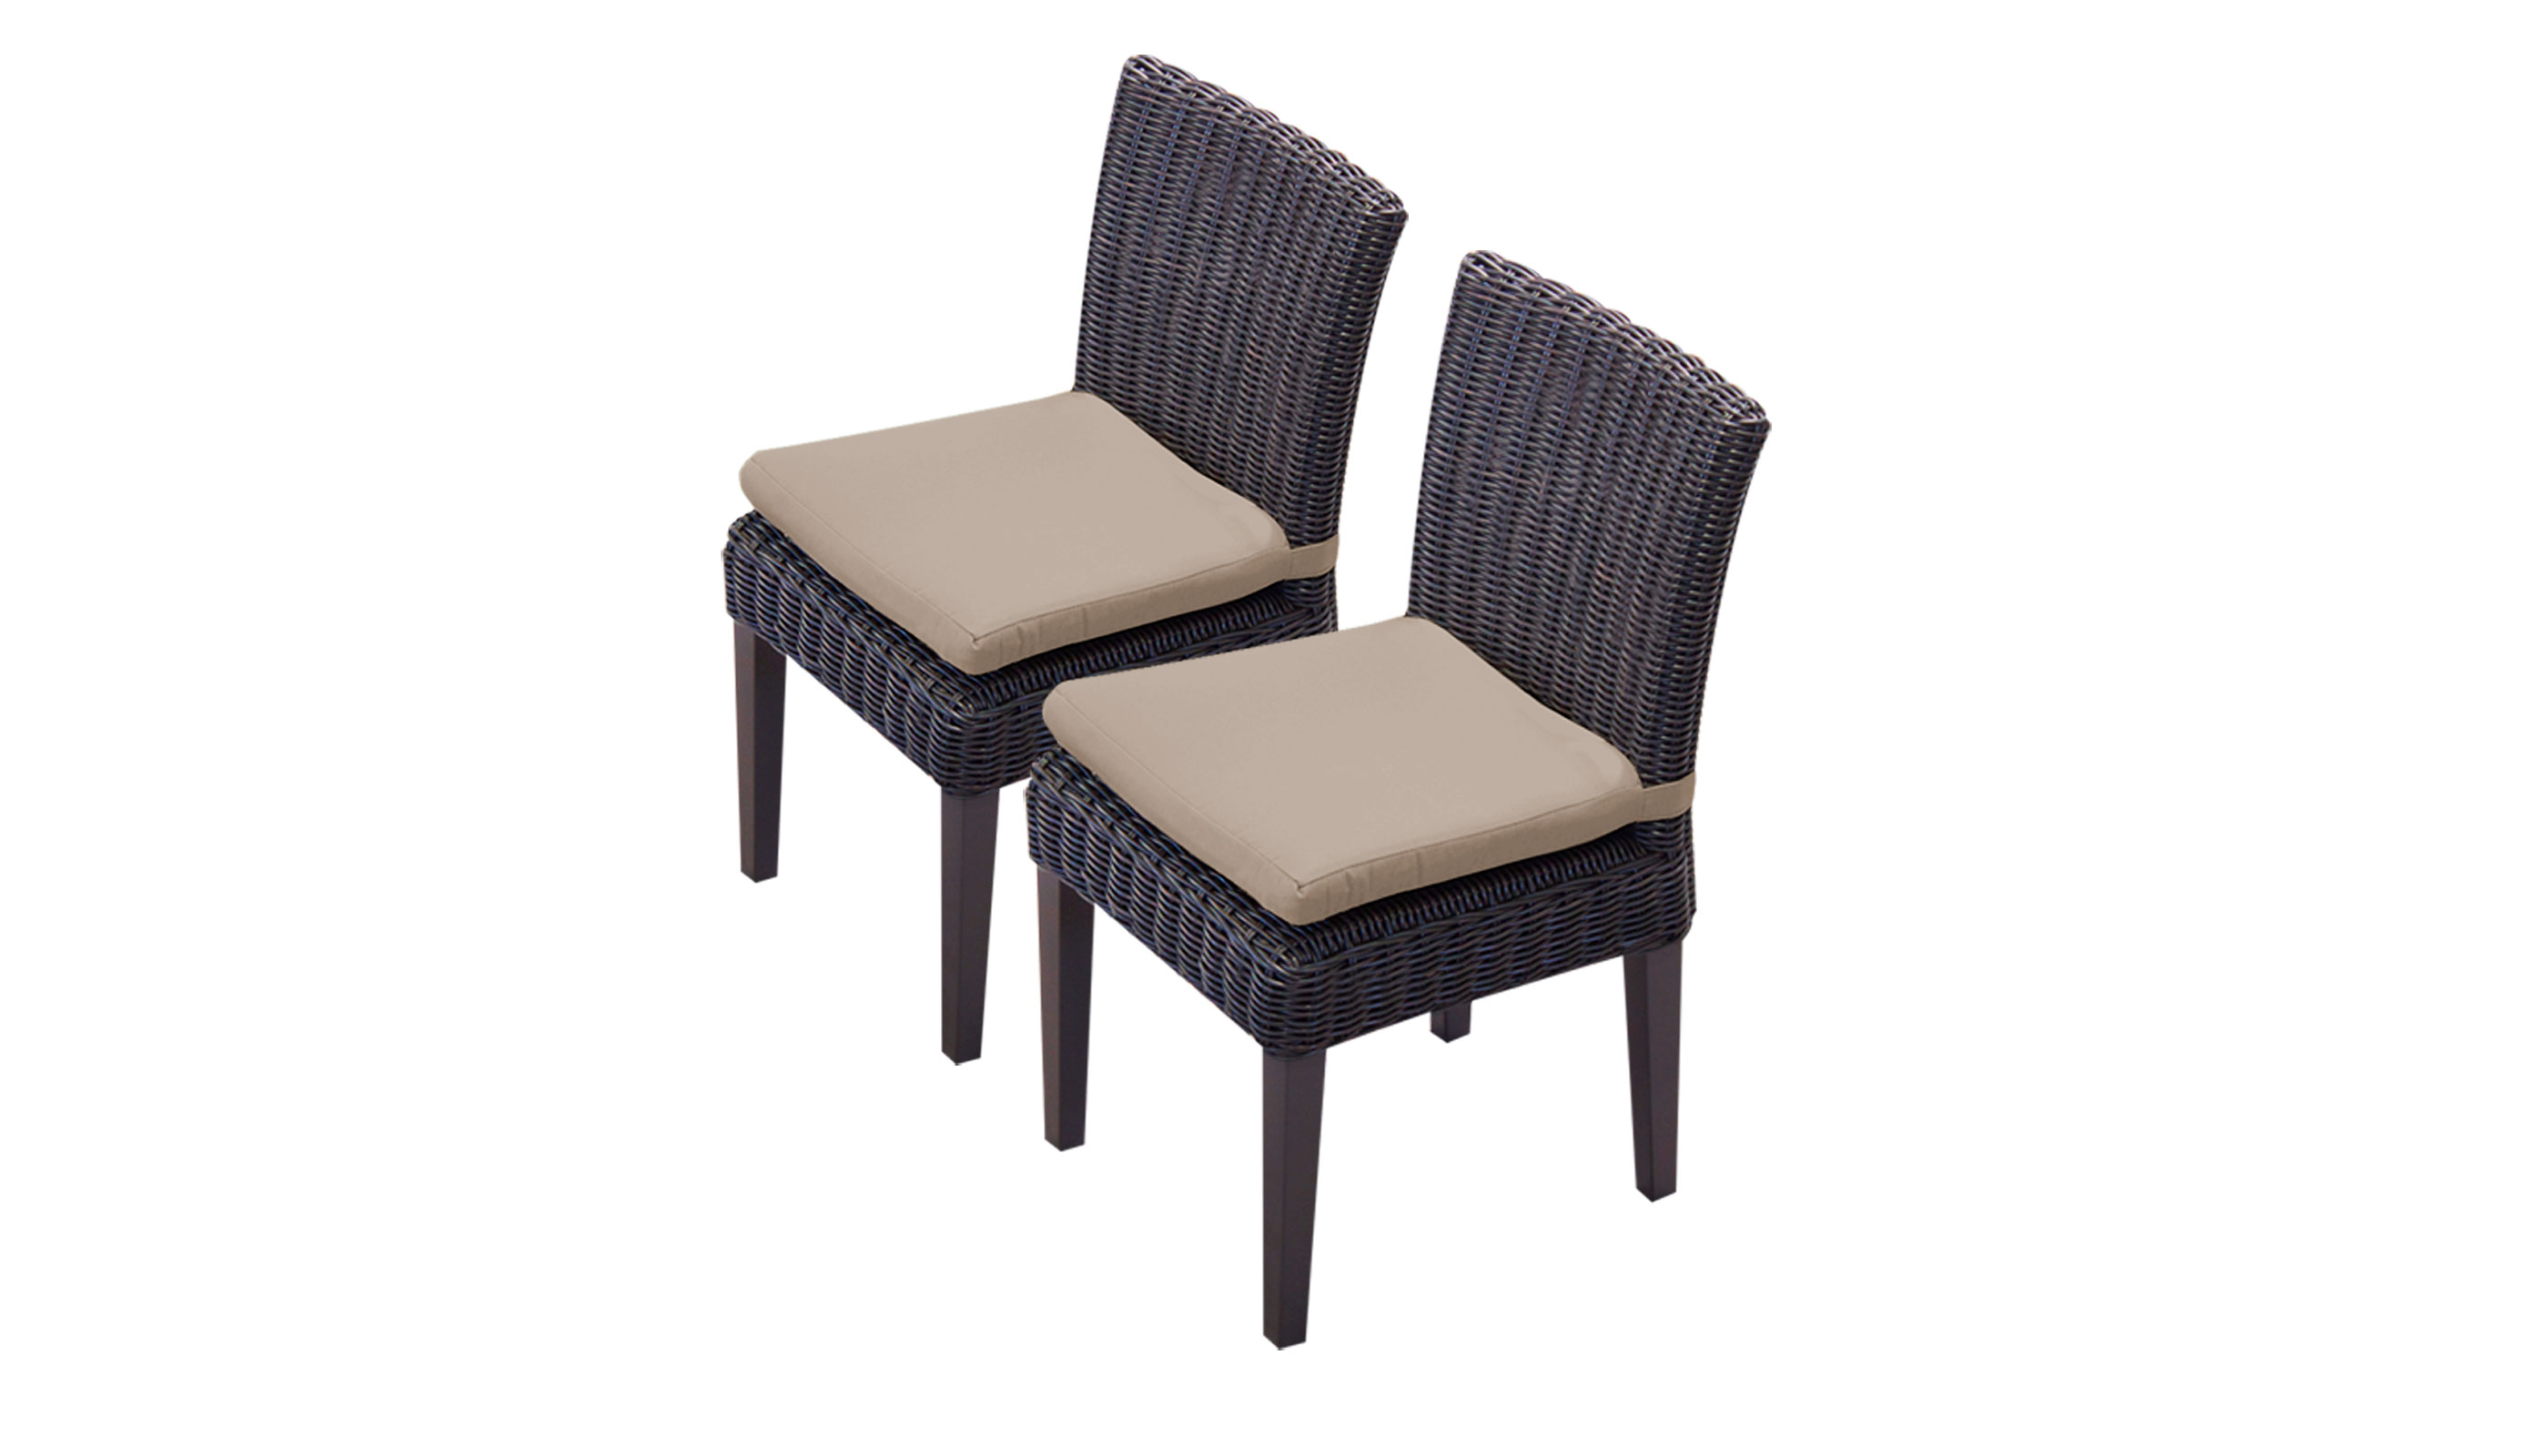 2 Rustico Armless Dining Chairs